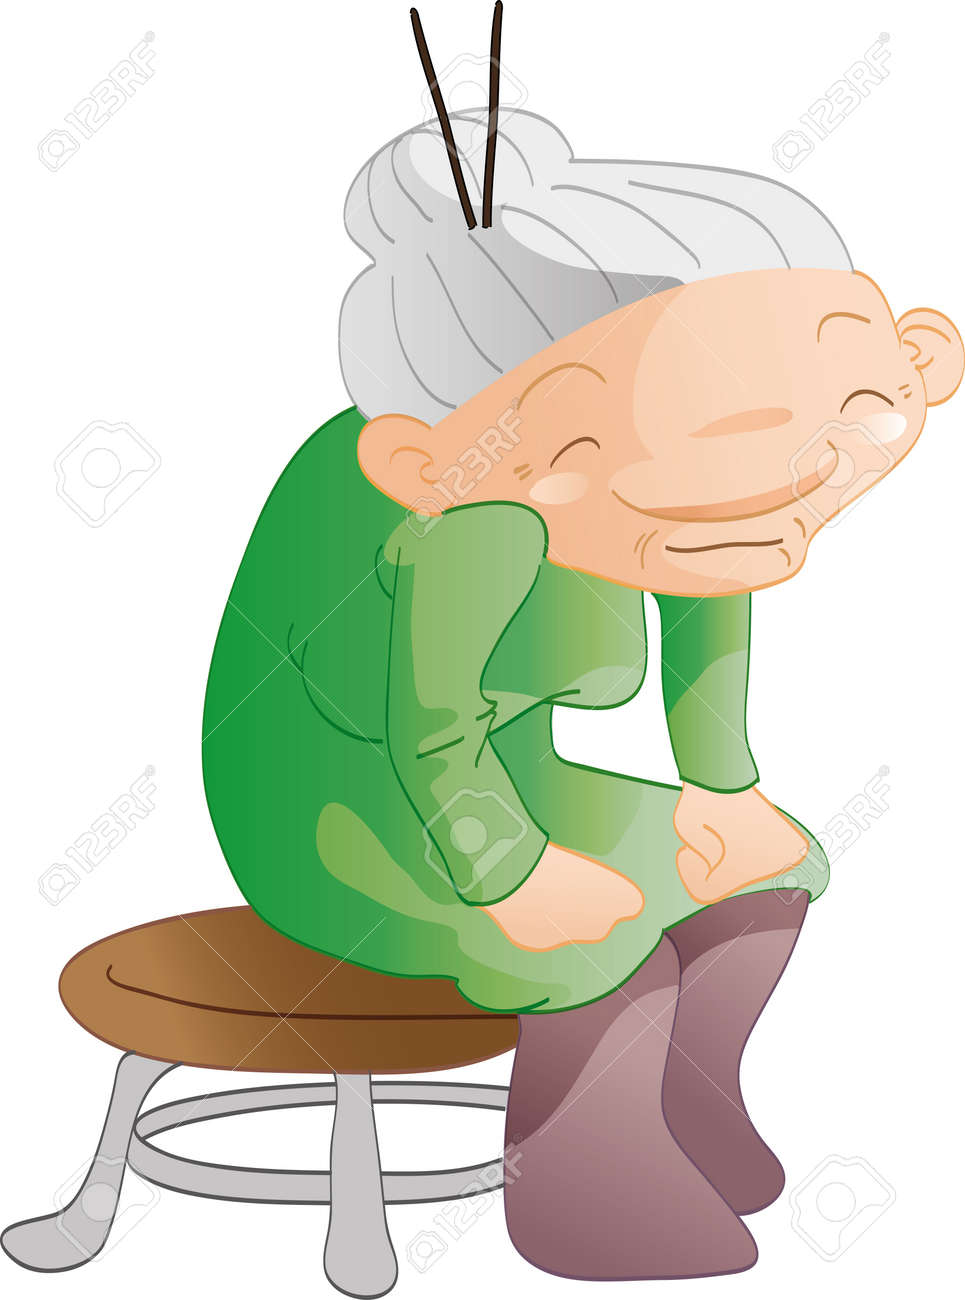 Cartoon Old Woman Sitting On A Chair Royalty Free Cliparts Vectors And Stock Illustration Image 17241505